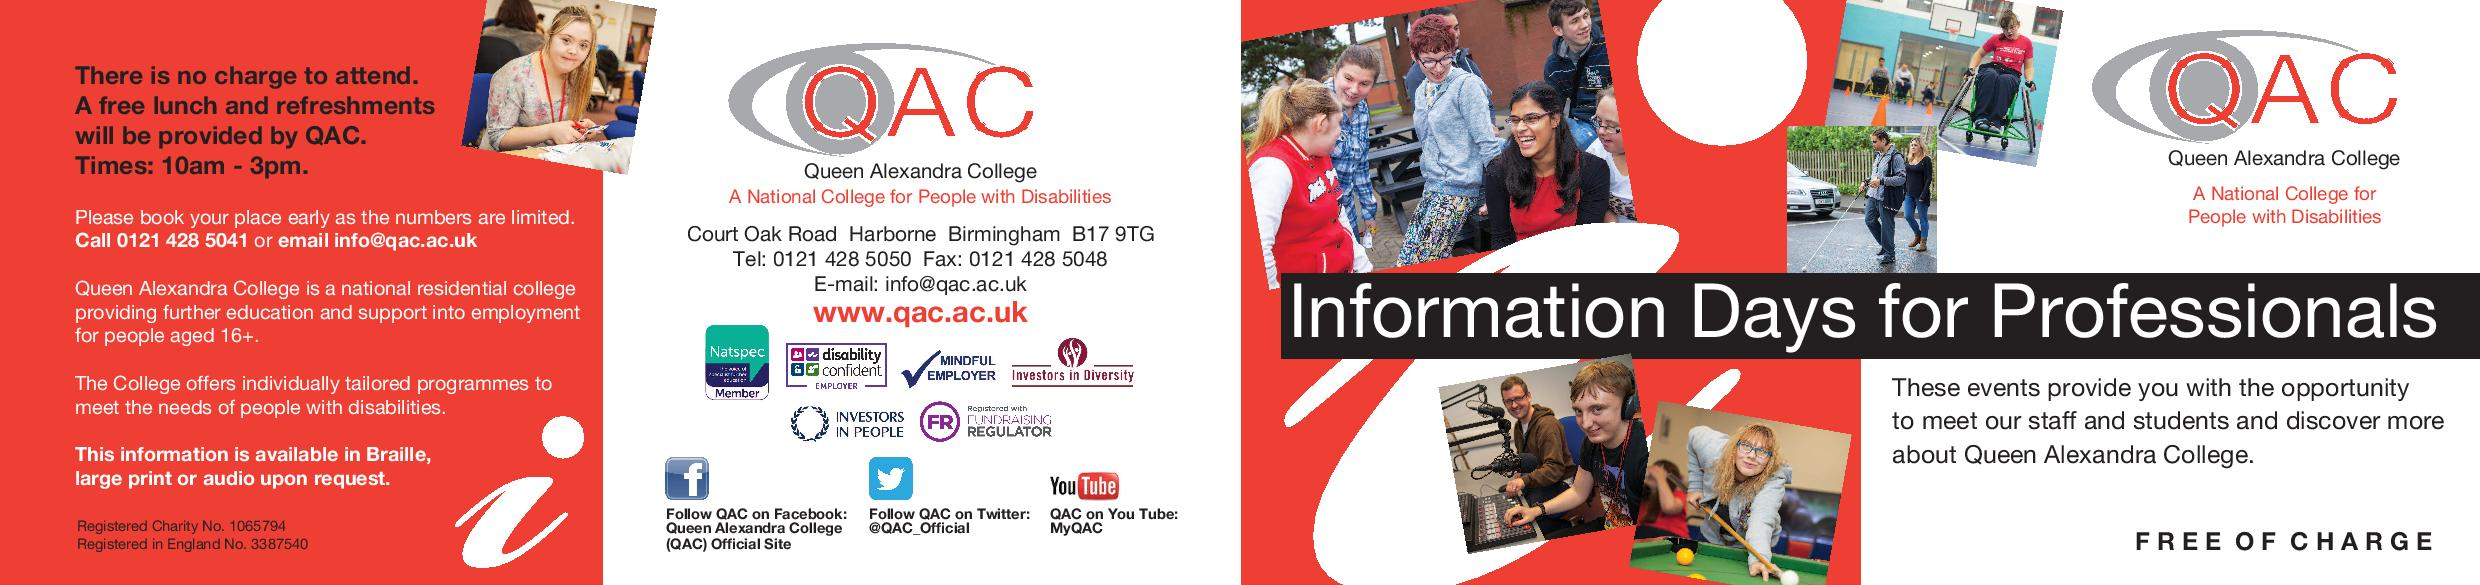 QAC information days for professionals